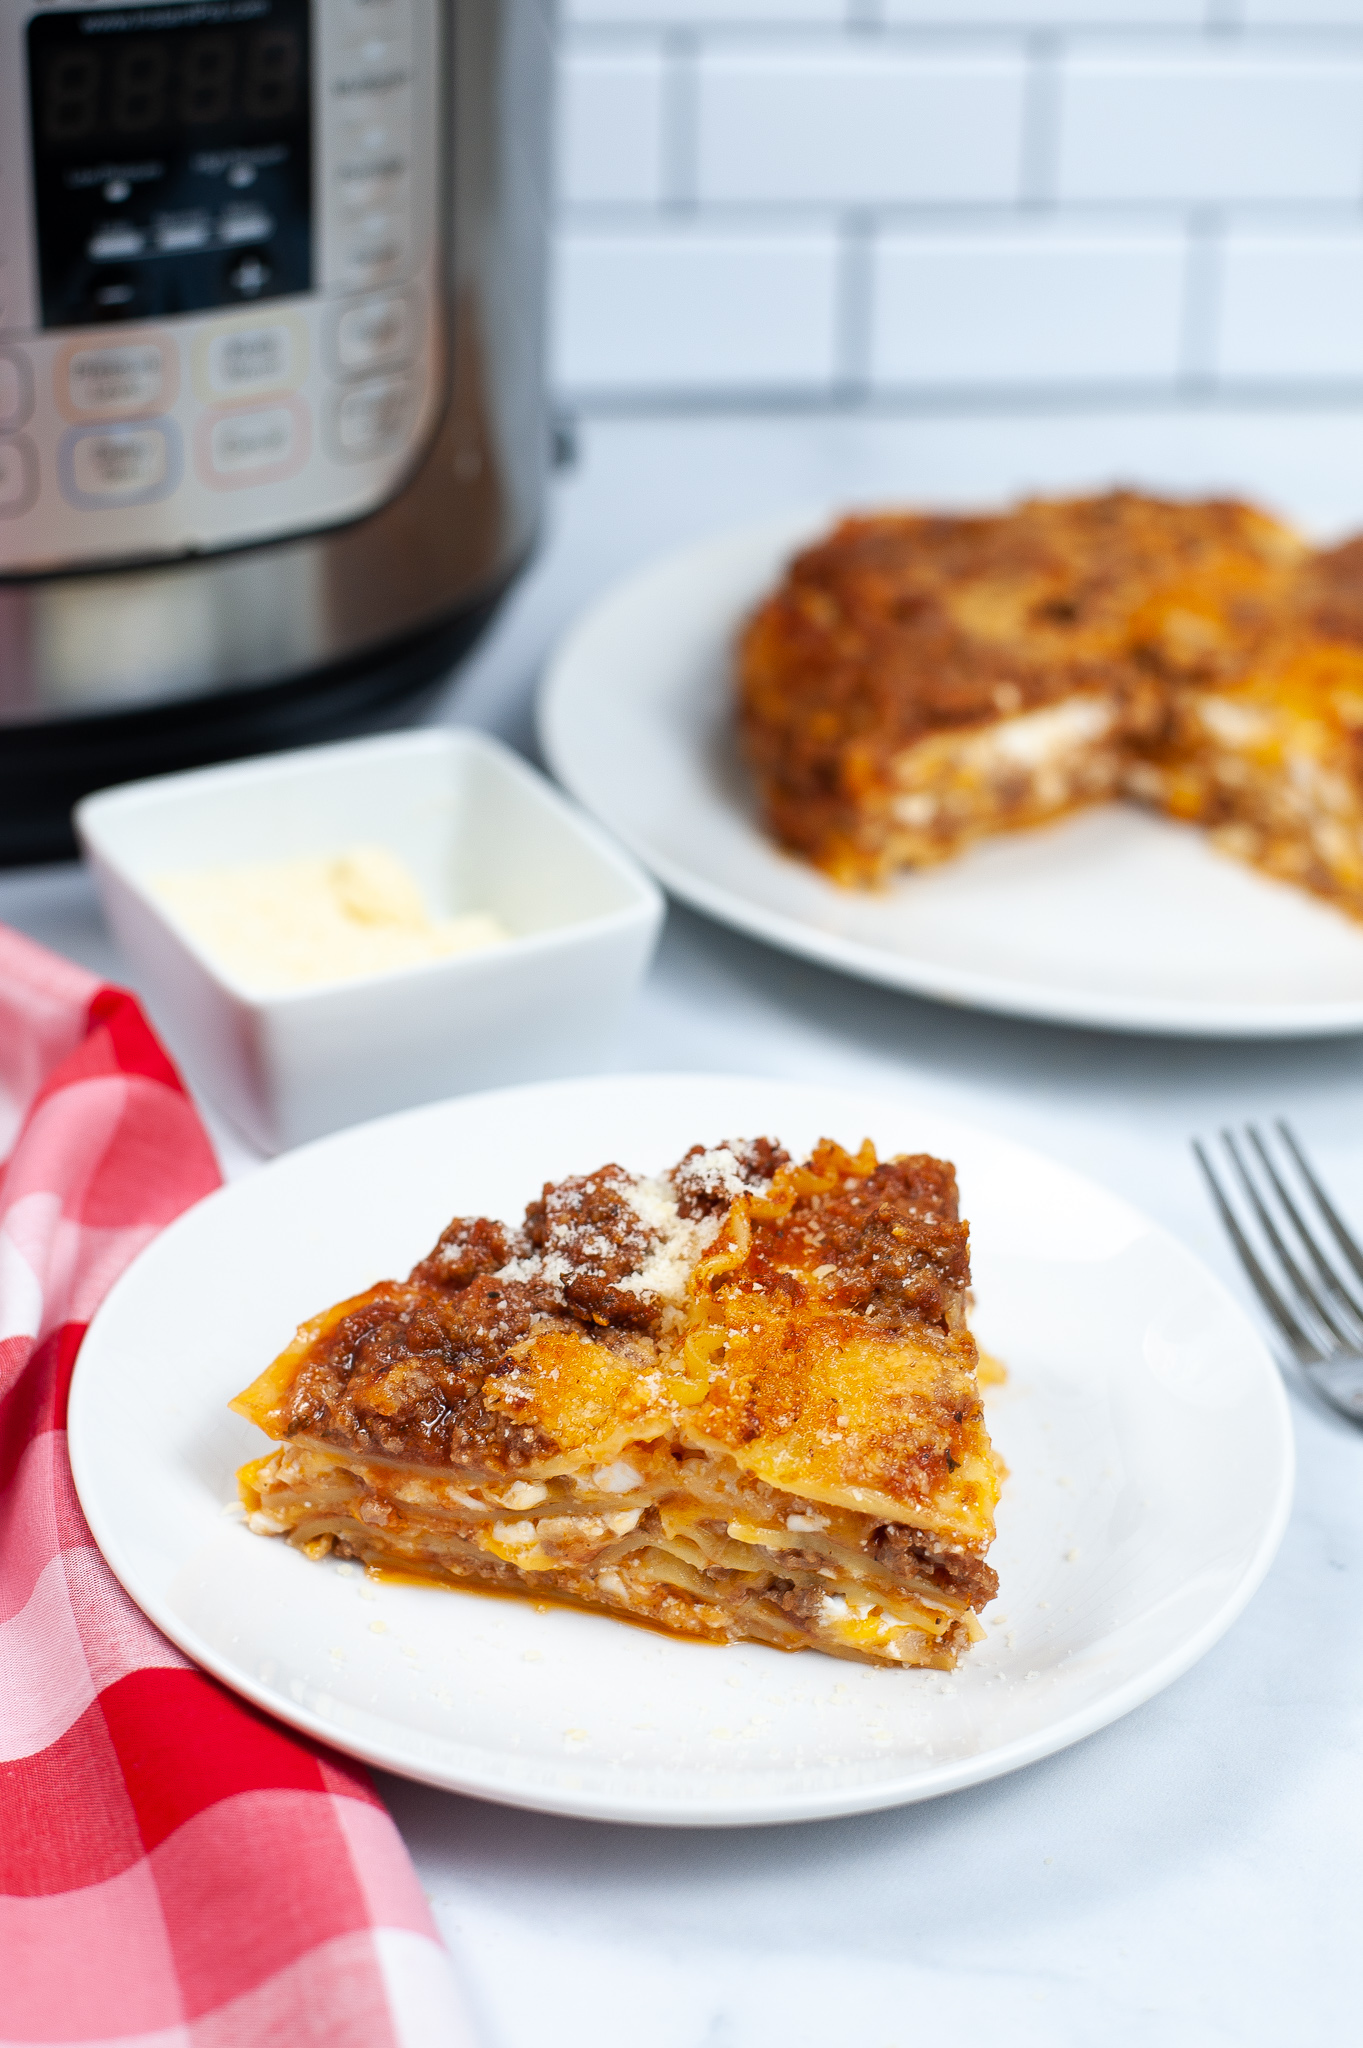 View of Instant Pot Lasagna with slice taken out and instant pot in the background.